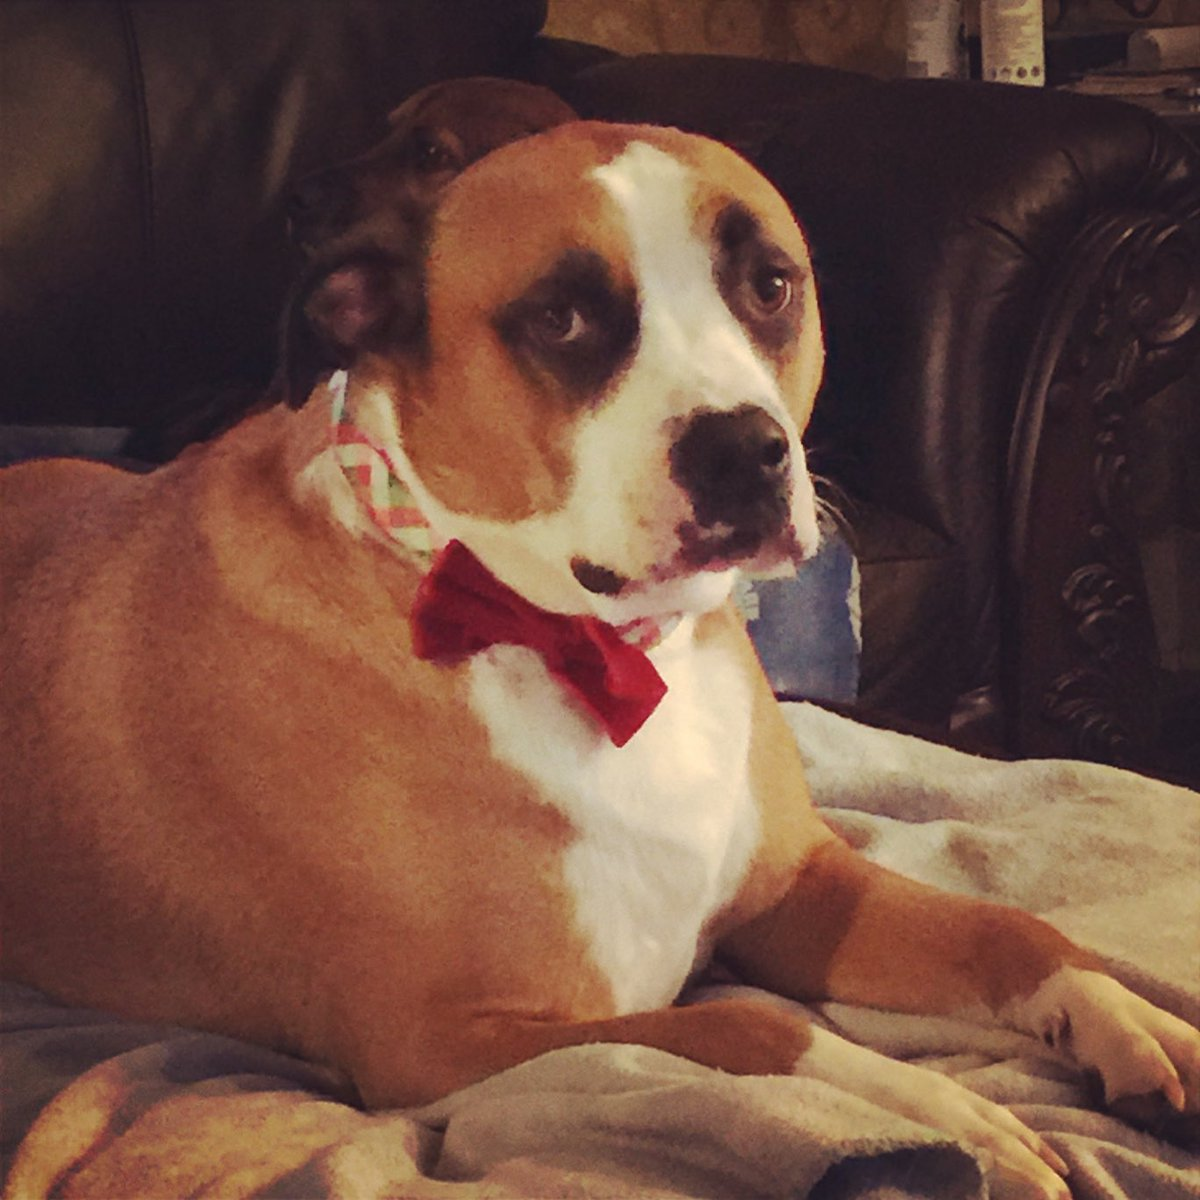 Meet Mr. Moosehead. He is a survivor of dog fighting where he was used as a bait dog. He is a very good boy. #PupweiserContest @budweiserusa @dog_rates https://t.co/BrktEL3O3e